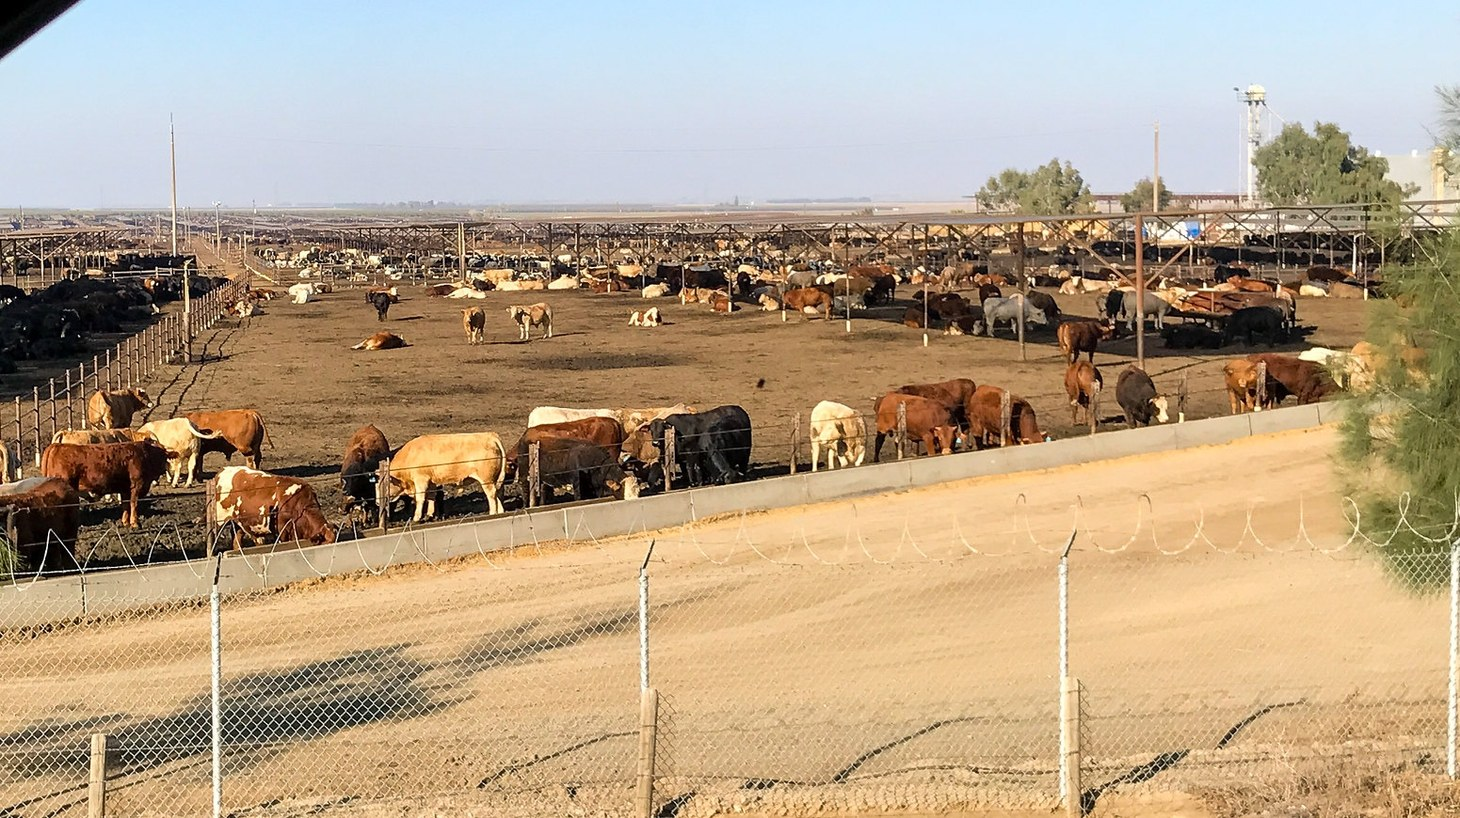 Harris Feeding Company. Cattle feed lot along I-5 in California's Central Valley